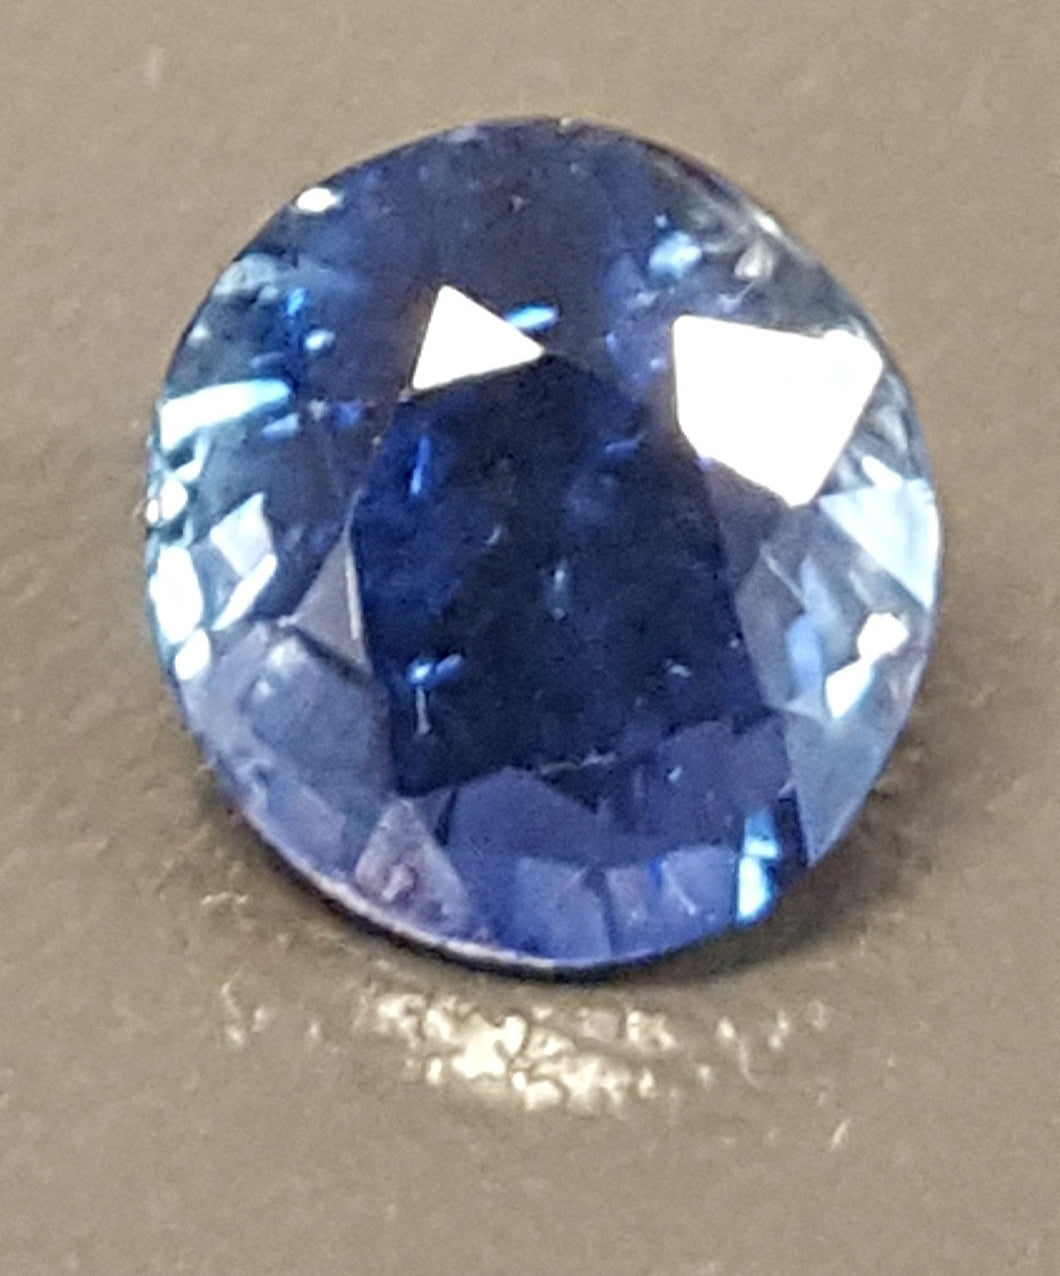 Gemstone - Sapphire, Blue (heated), bright color - 2.025 cts oval